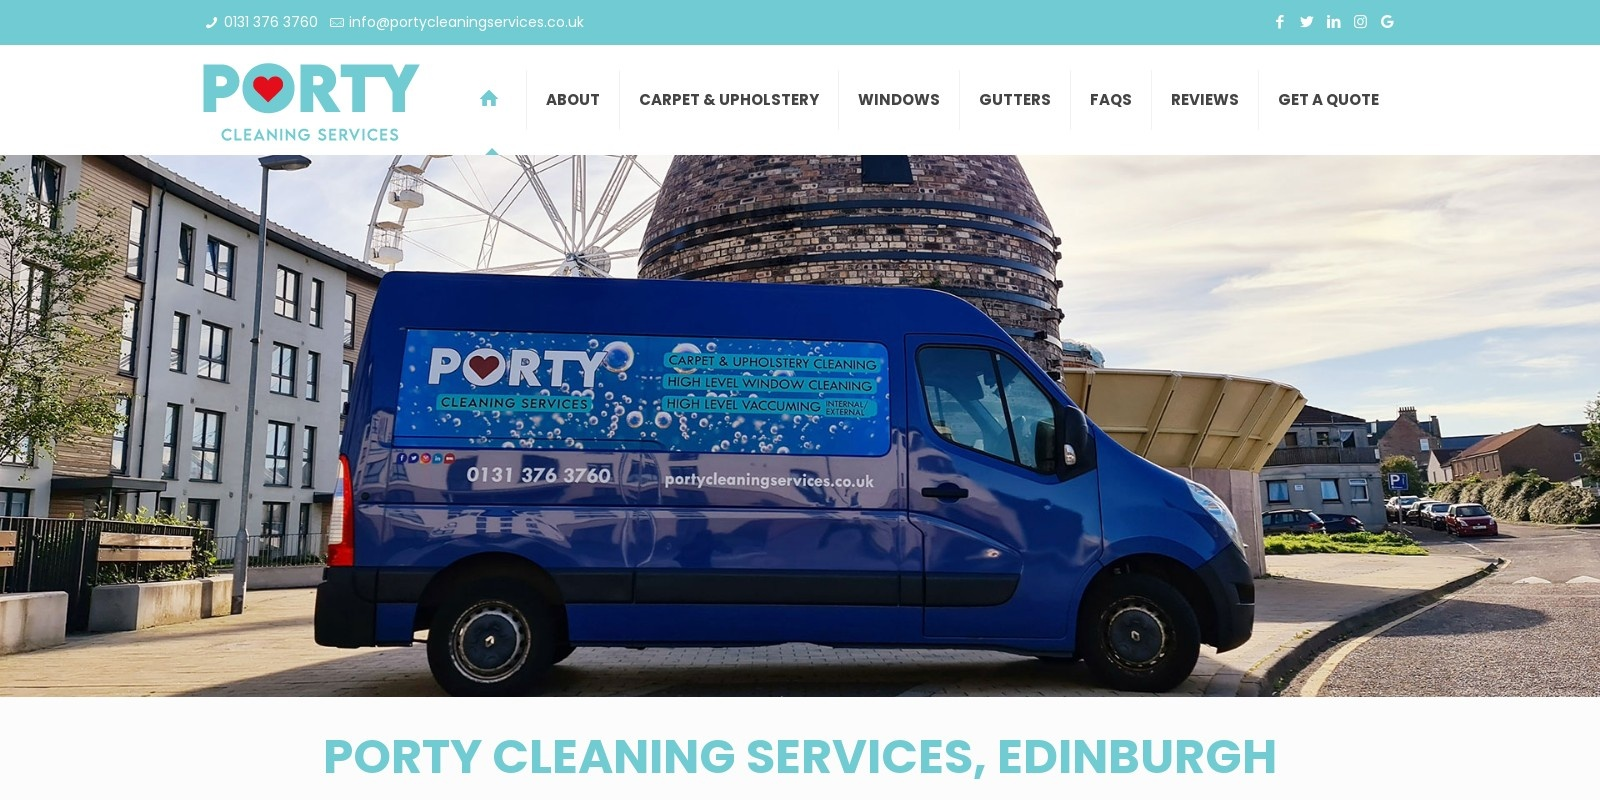 Preview of https://www.portycleaningservices.co.uk